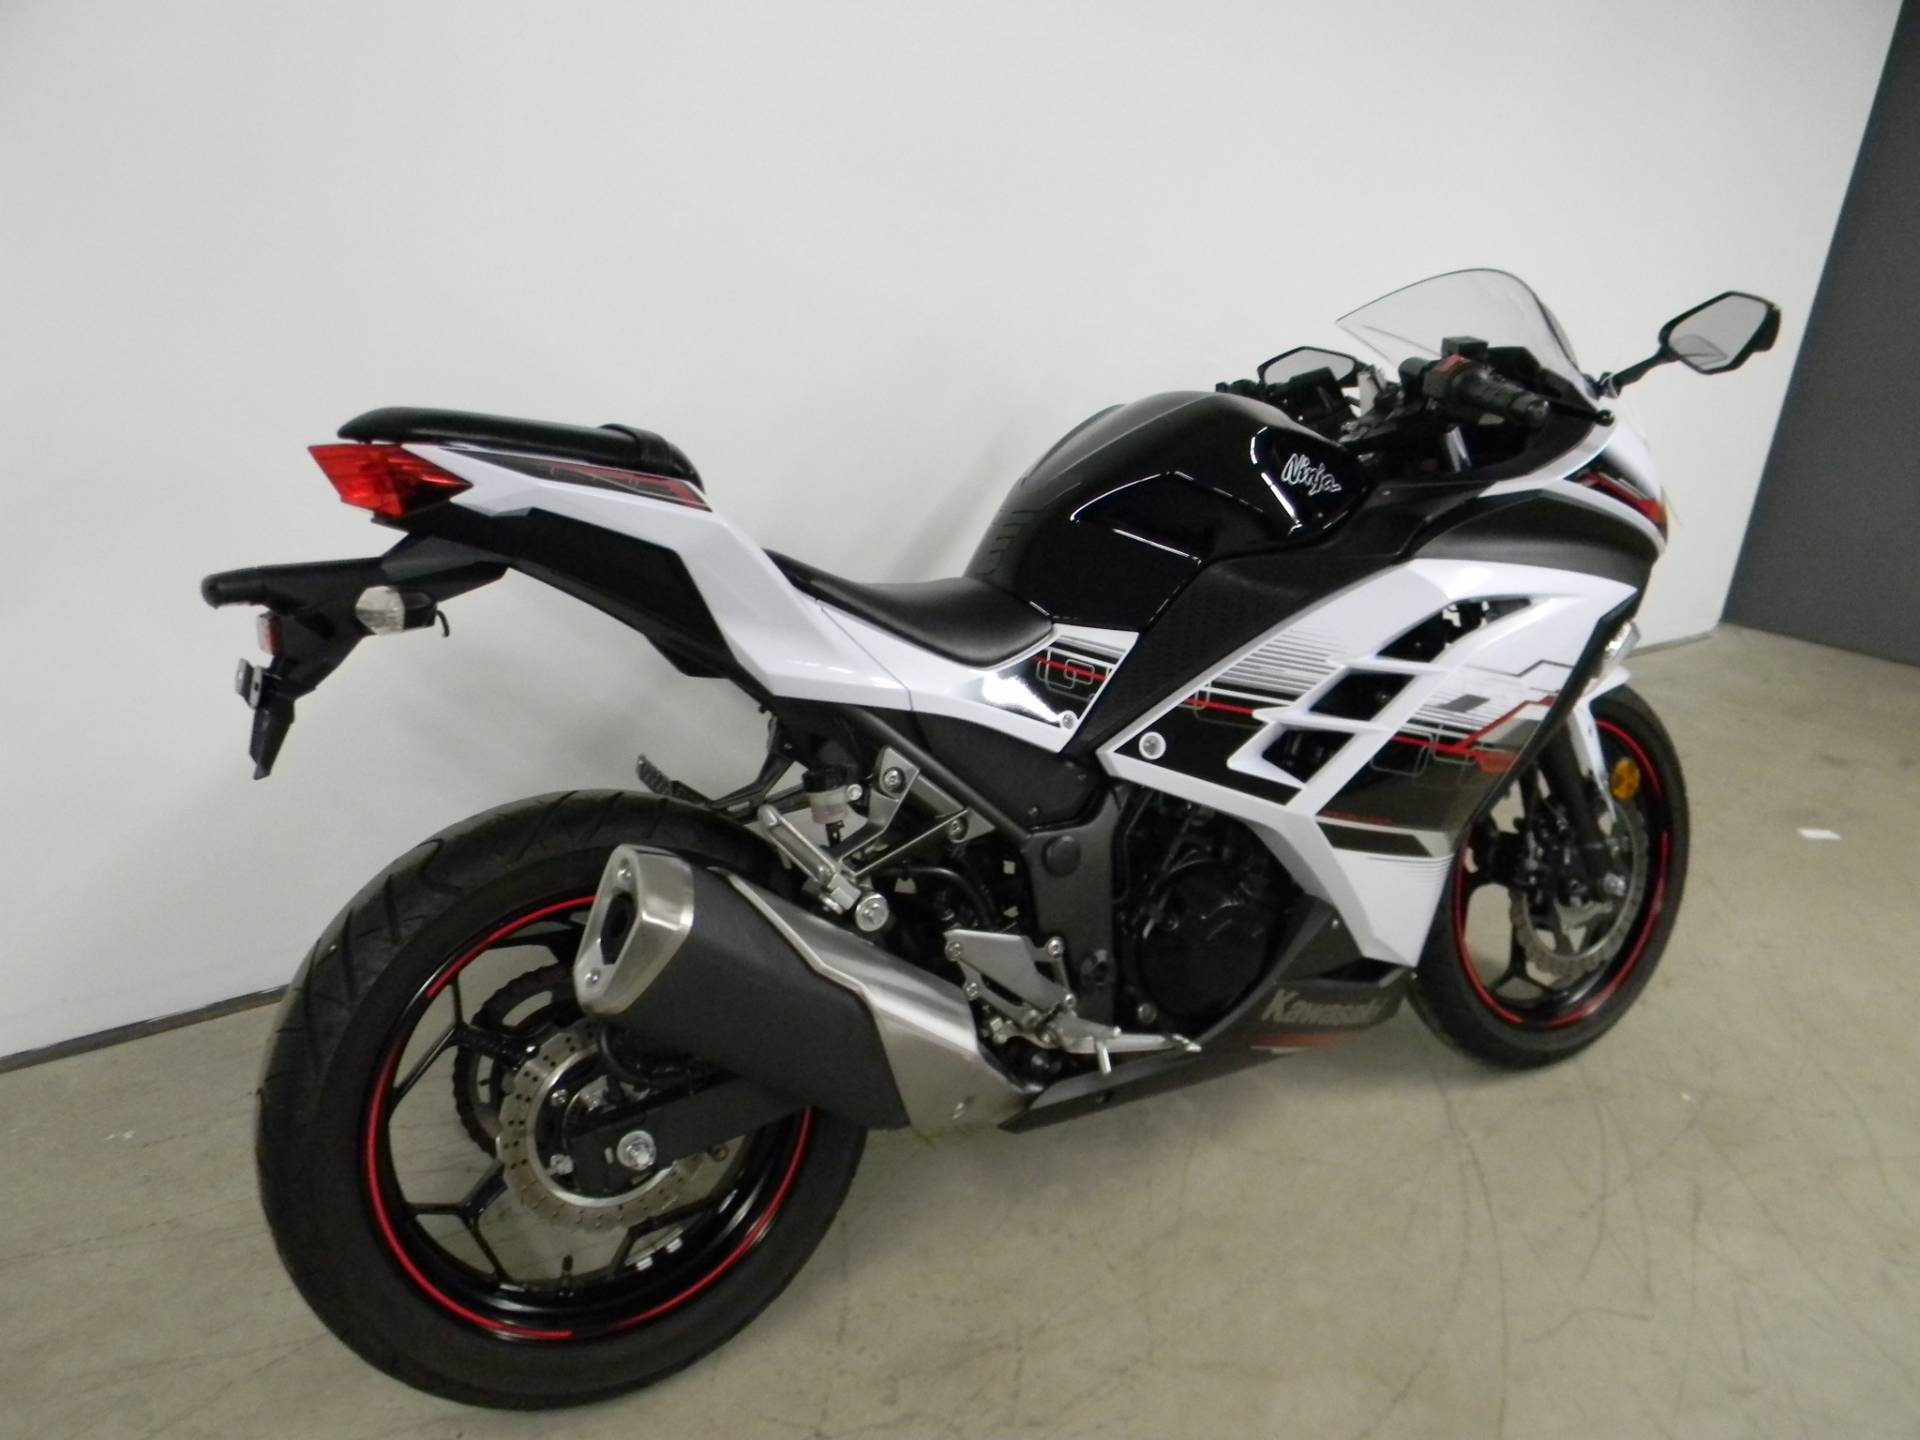 2014 Kawasaki Ninja® 300 SE in Springfield, Massachusetts - Photo 3